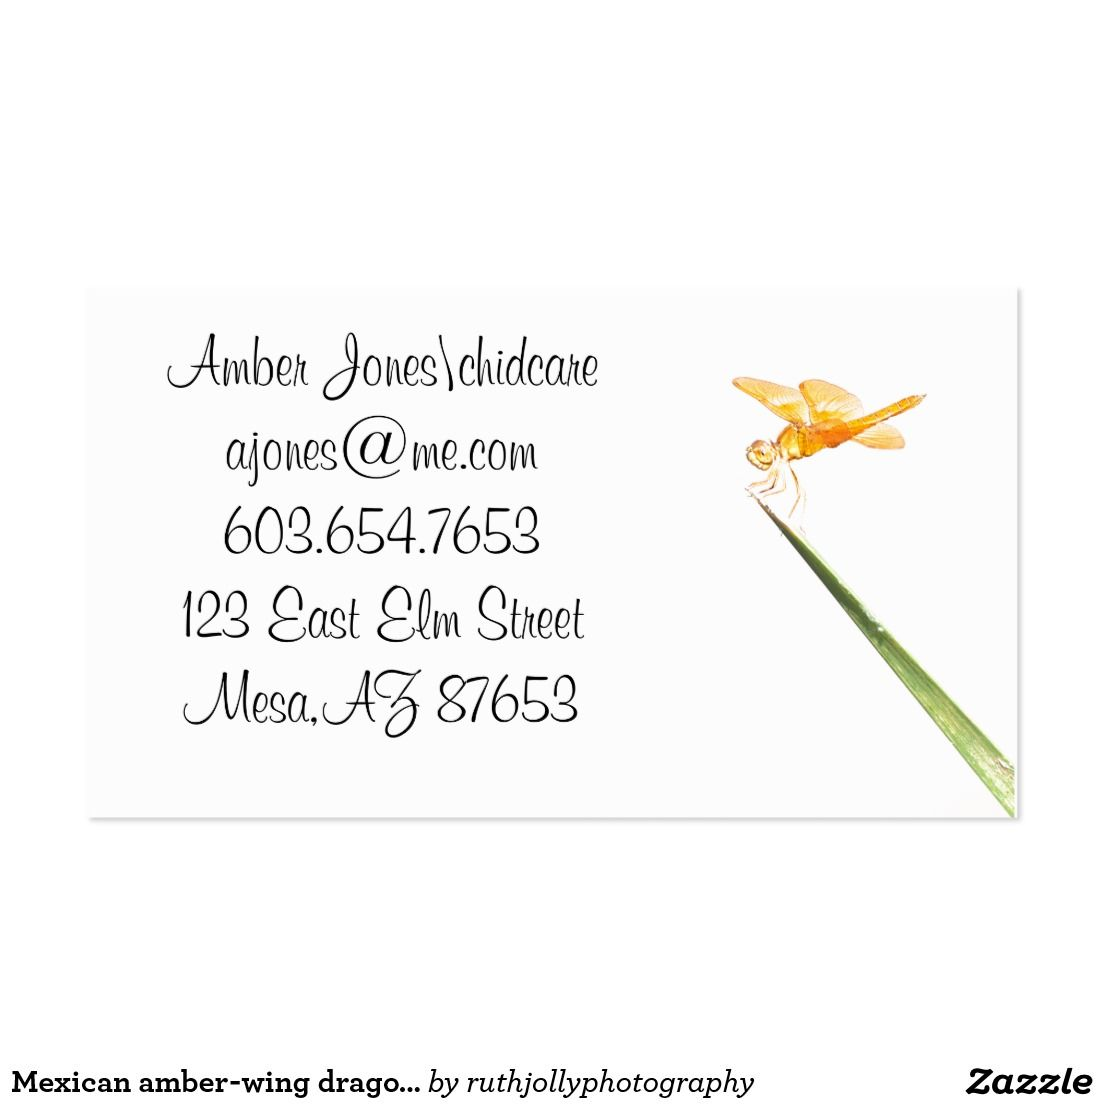 Mexican amber-wing dragonfly business card | Dragonflies, Business ...